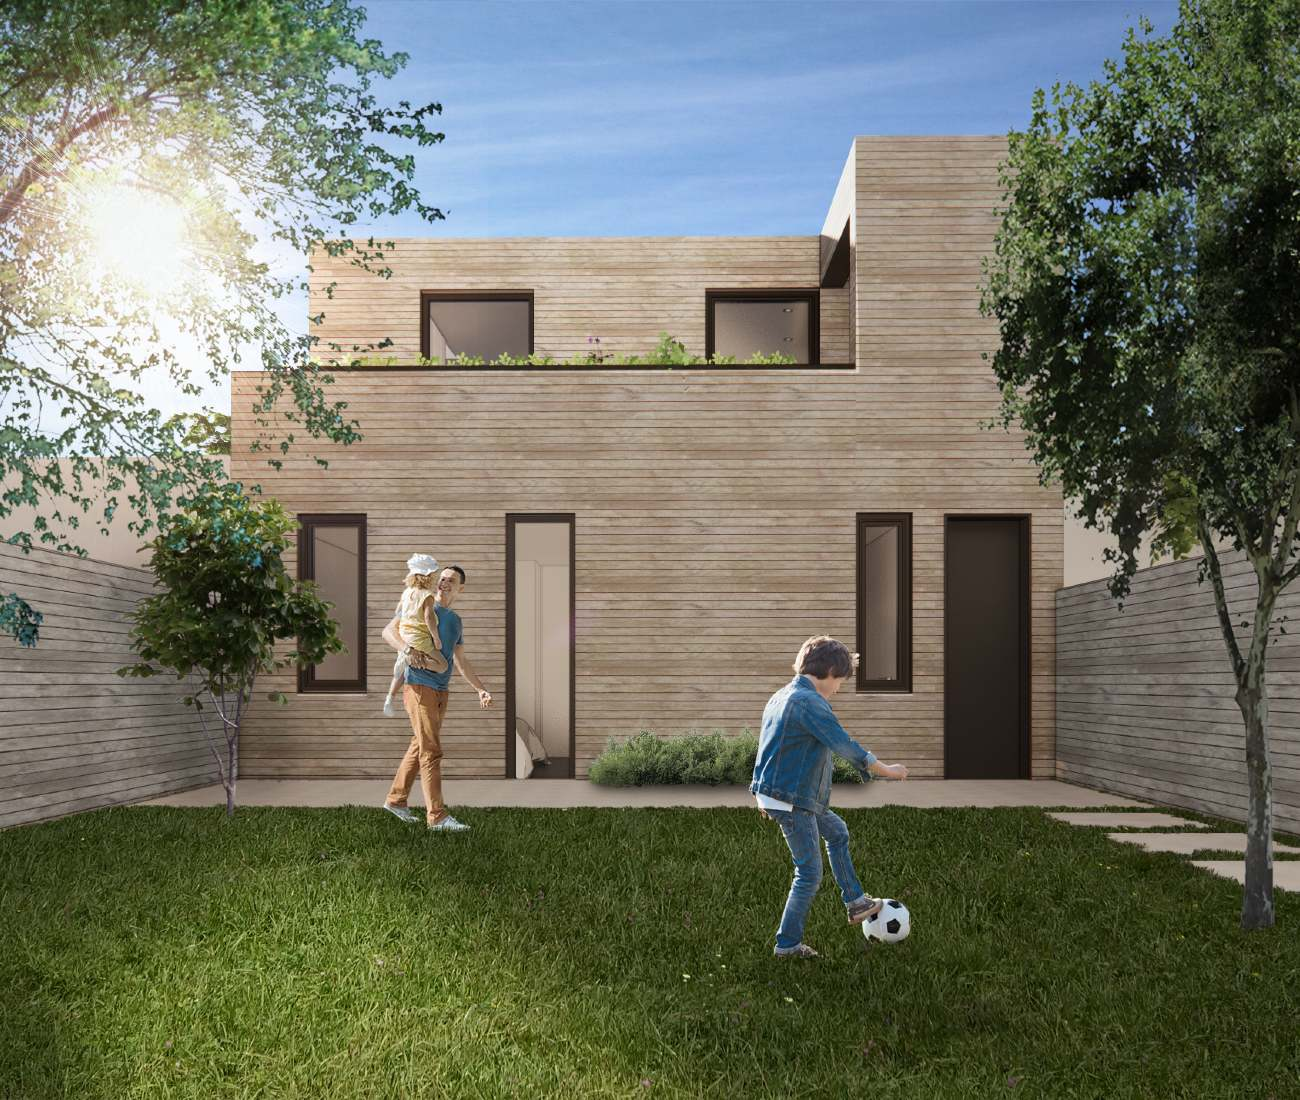 Up top, the bedroom has a private walk-out patio, which extends onto the green roof and overlooks the shared backyard. Render courtesy of Superkül.